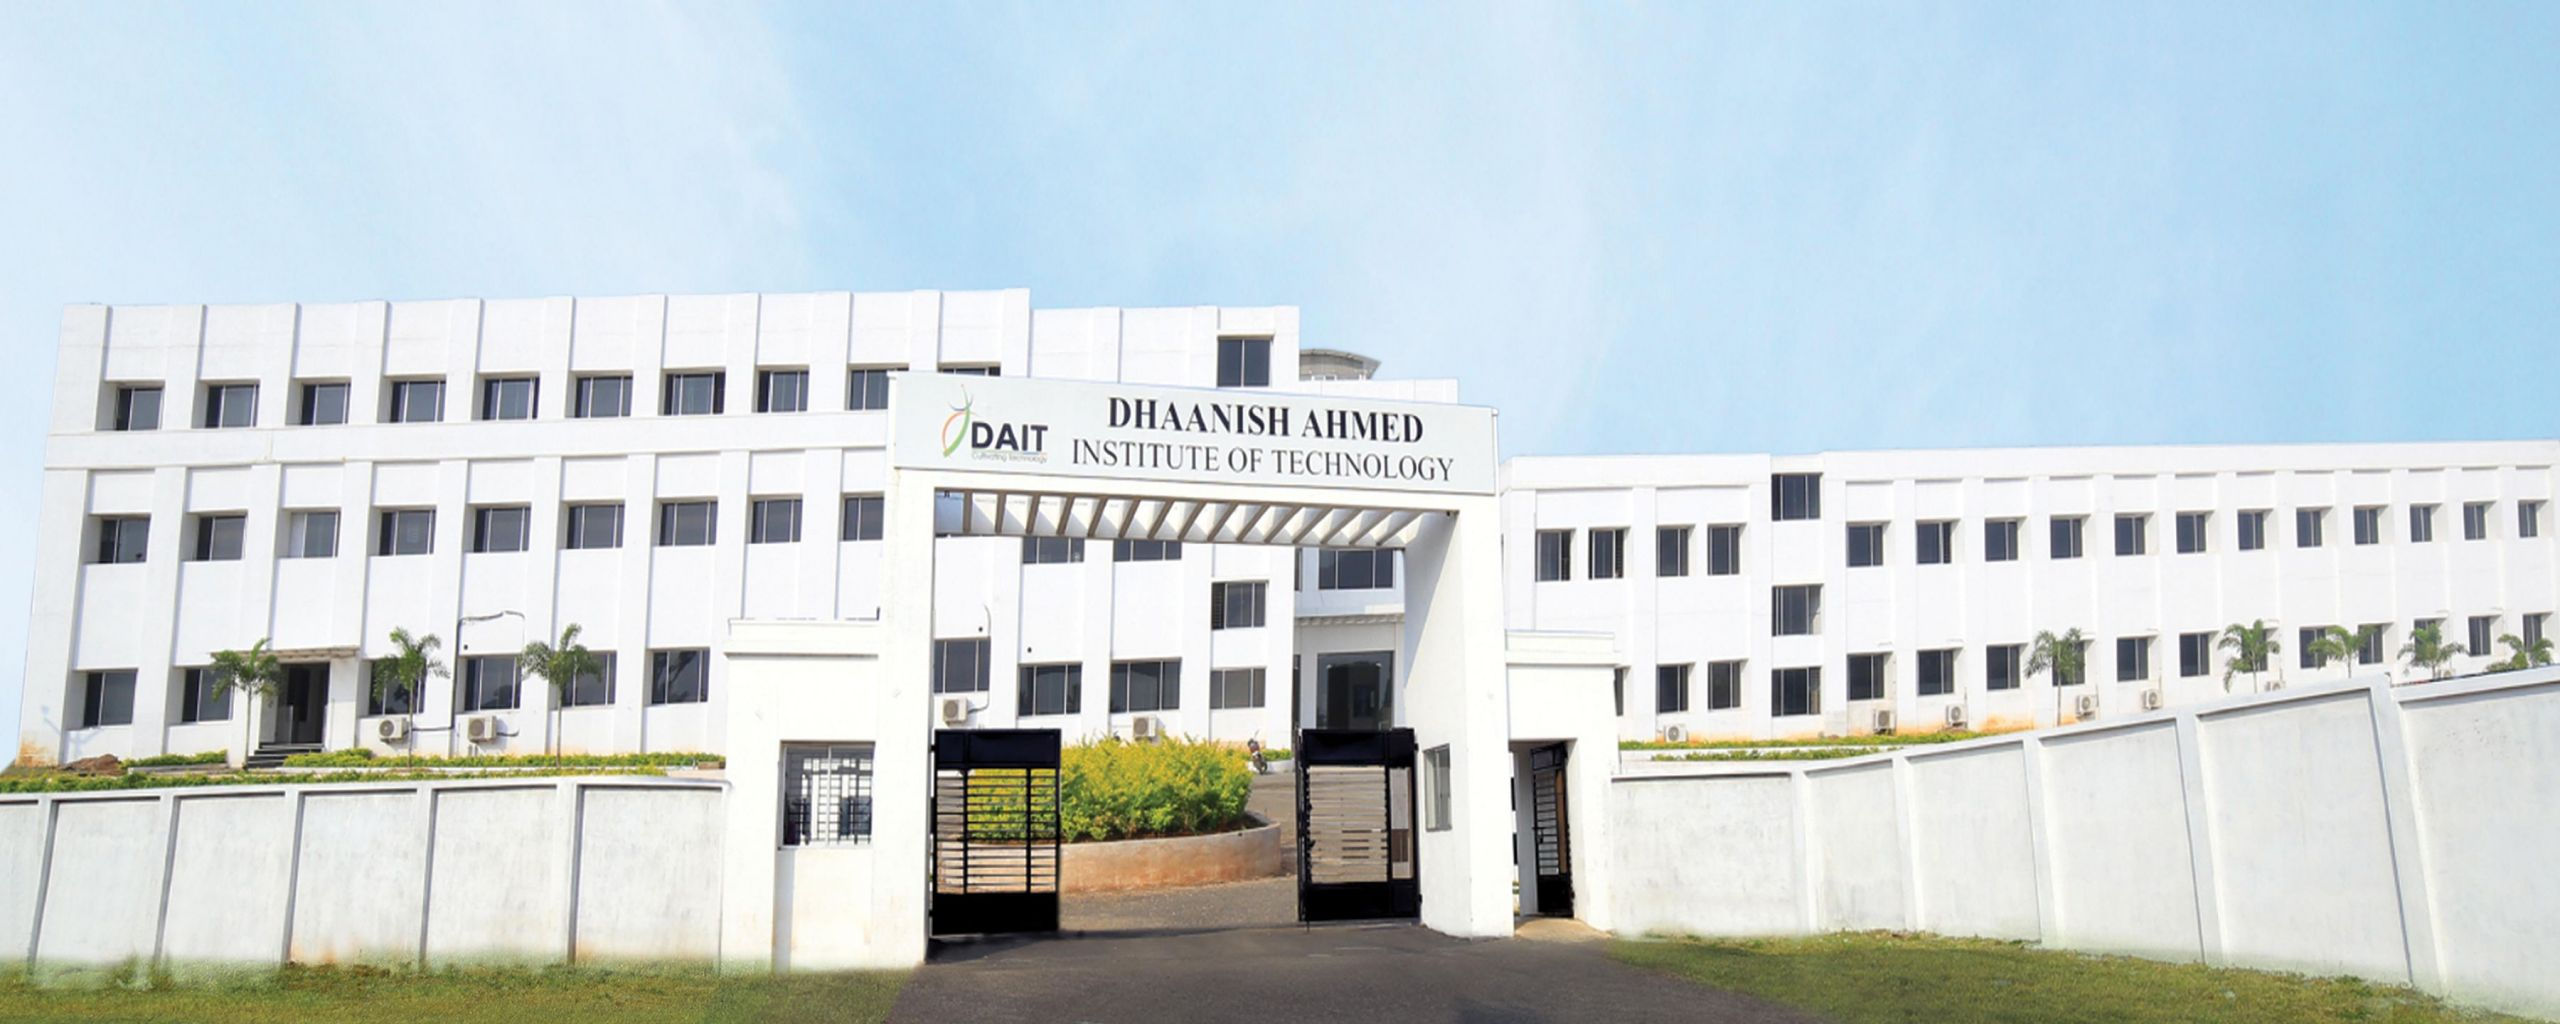 Dhaanish Ahmed Institute of Technology, Coimbatore Image